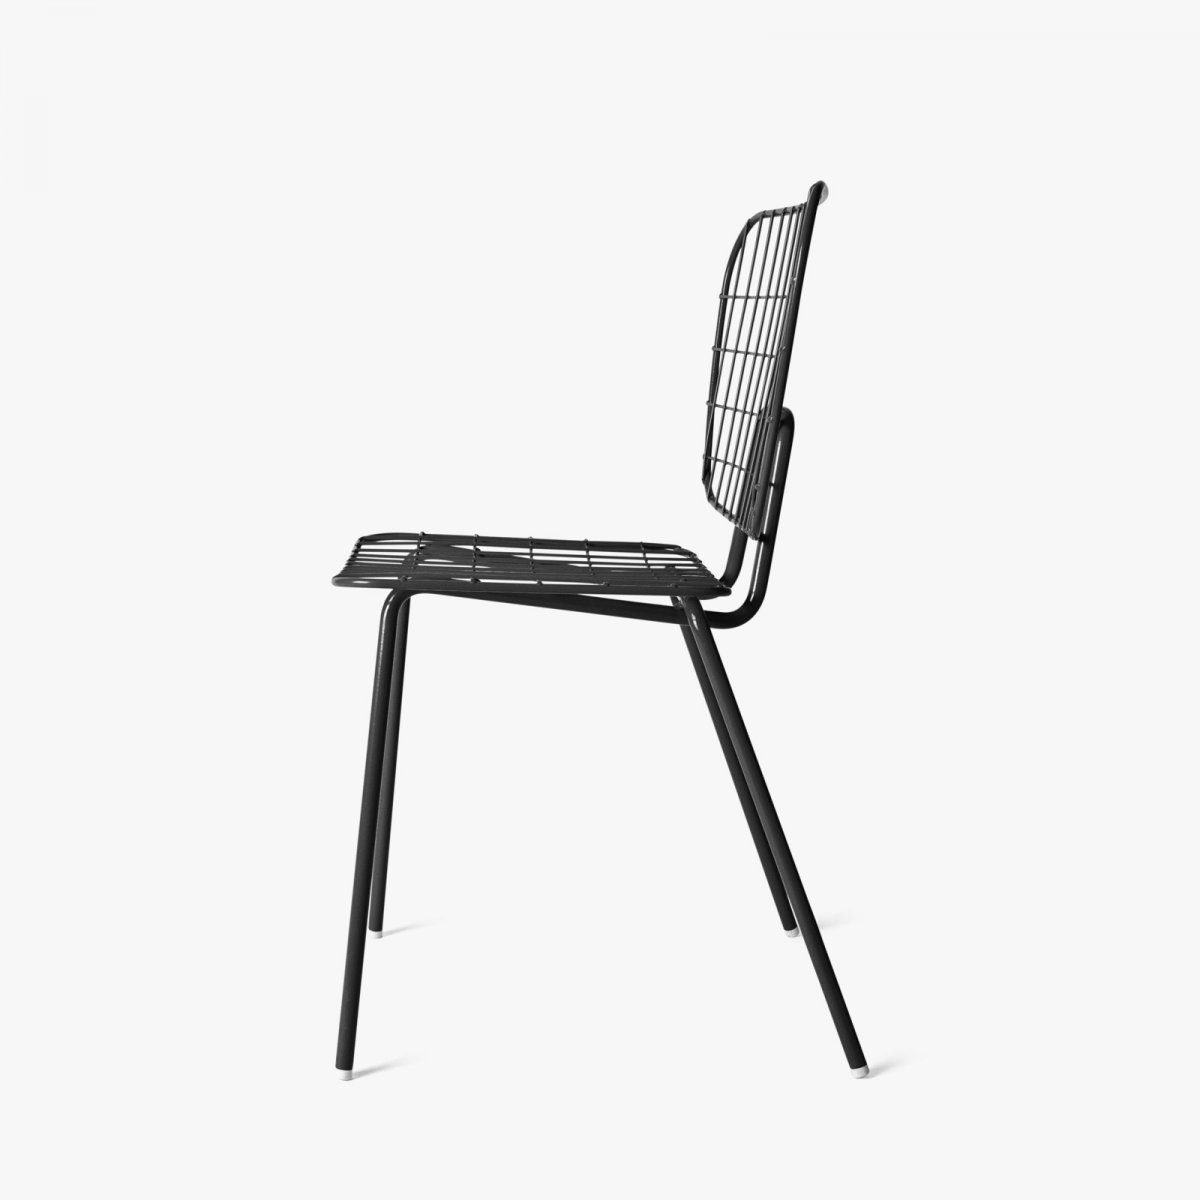 WM String Dining Chair, black, side view.